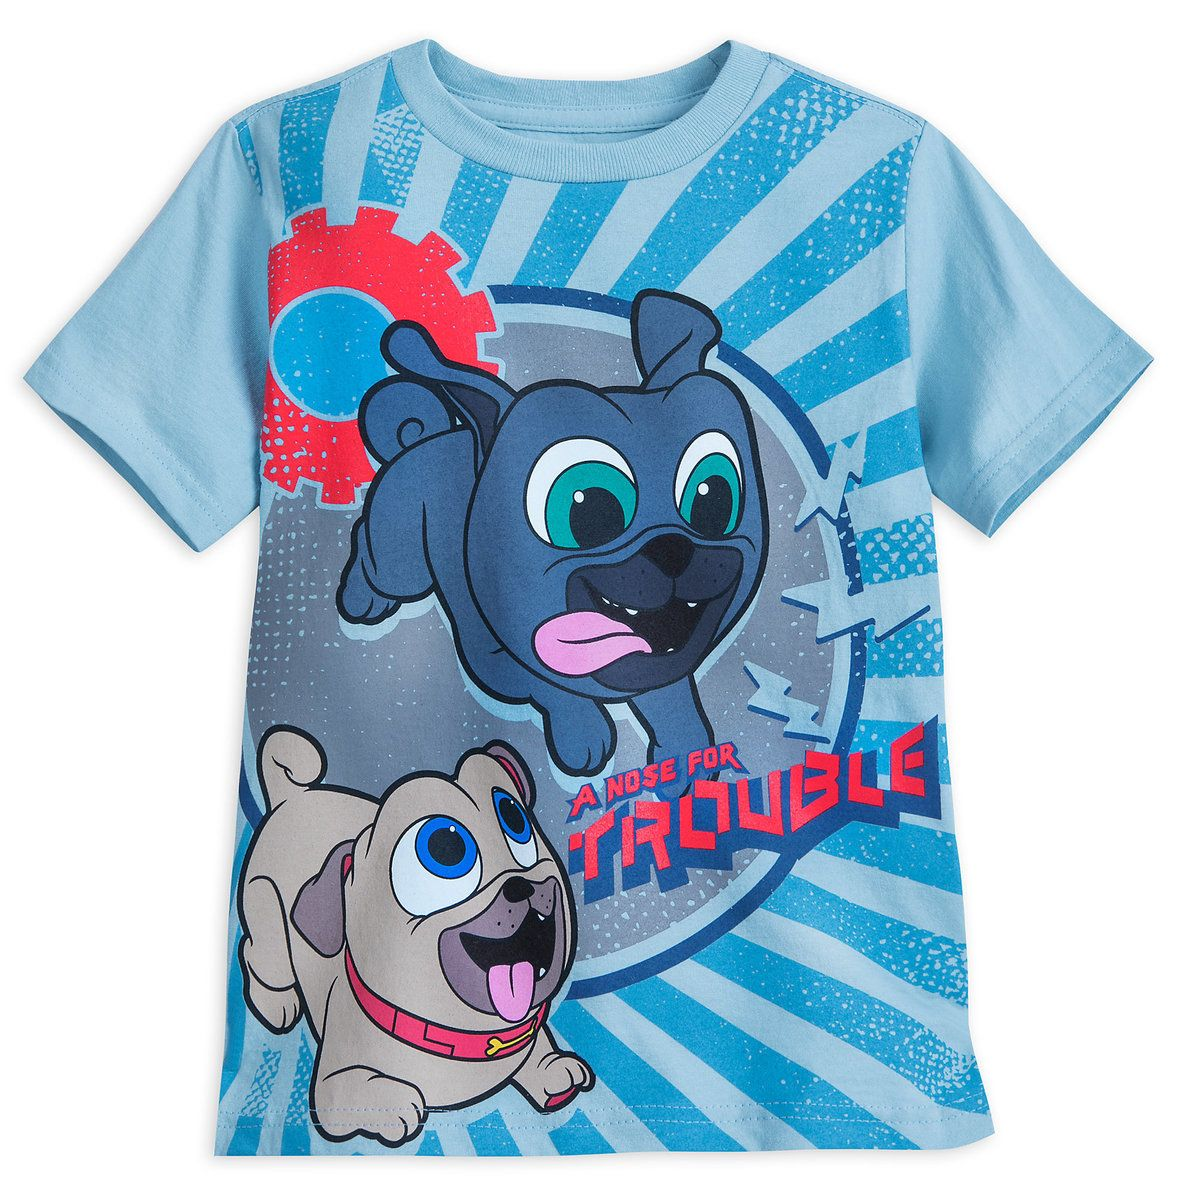 Bingo And Rolly T Shirt For Boys Puppy Dog Pals Dog Clothes